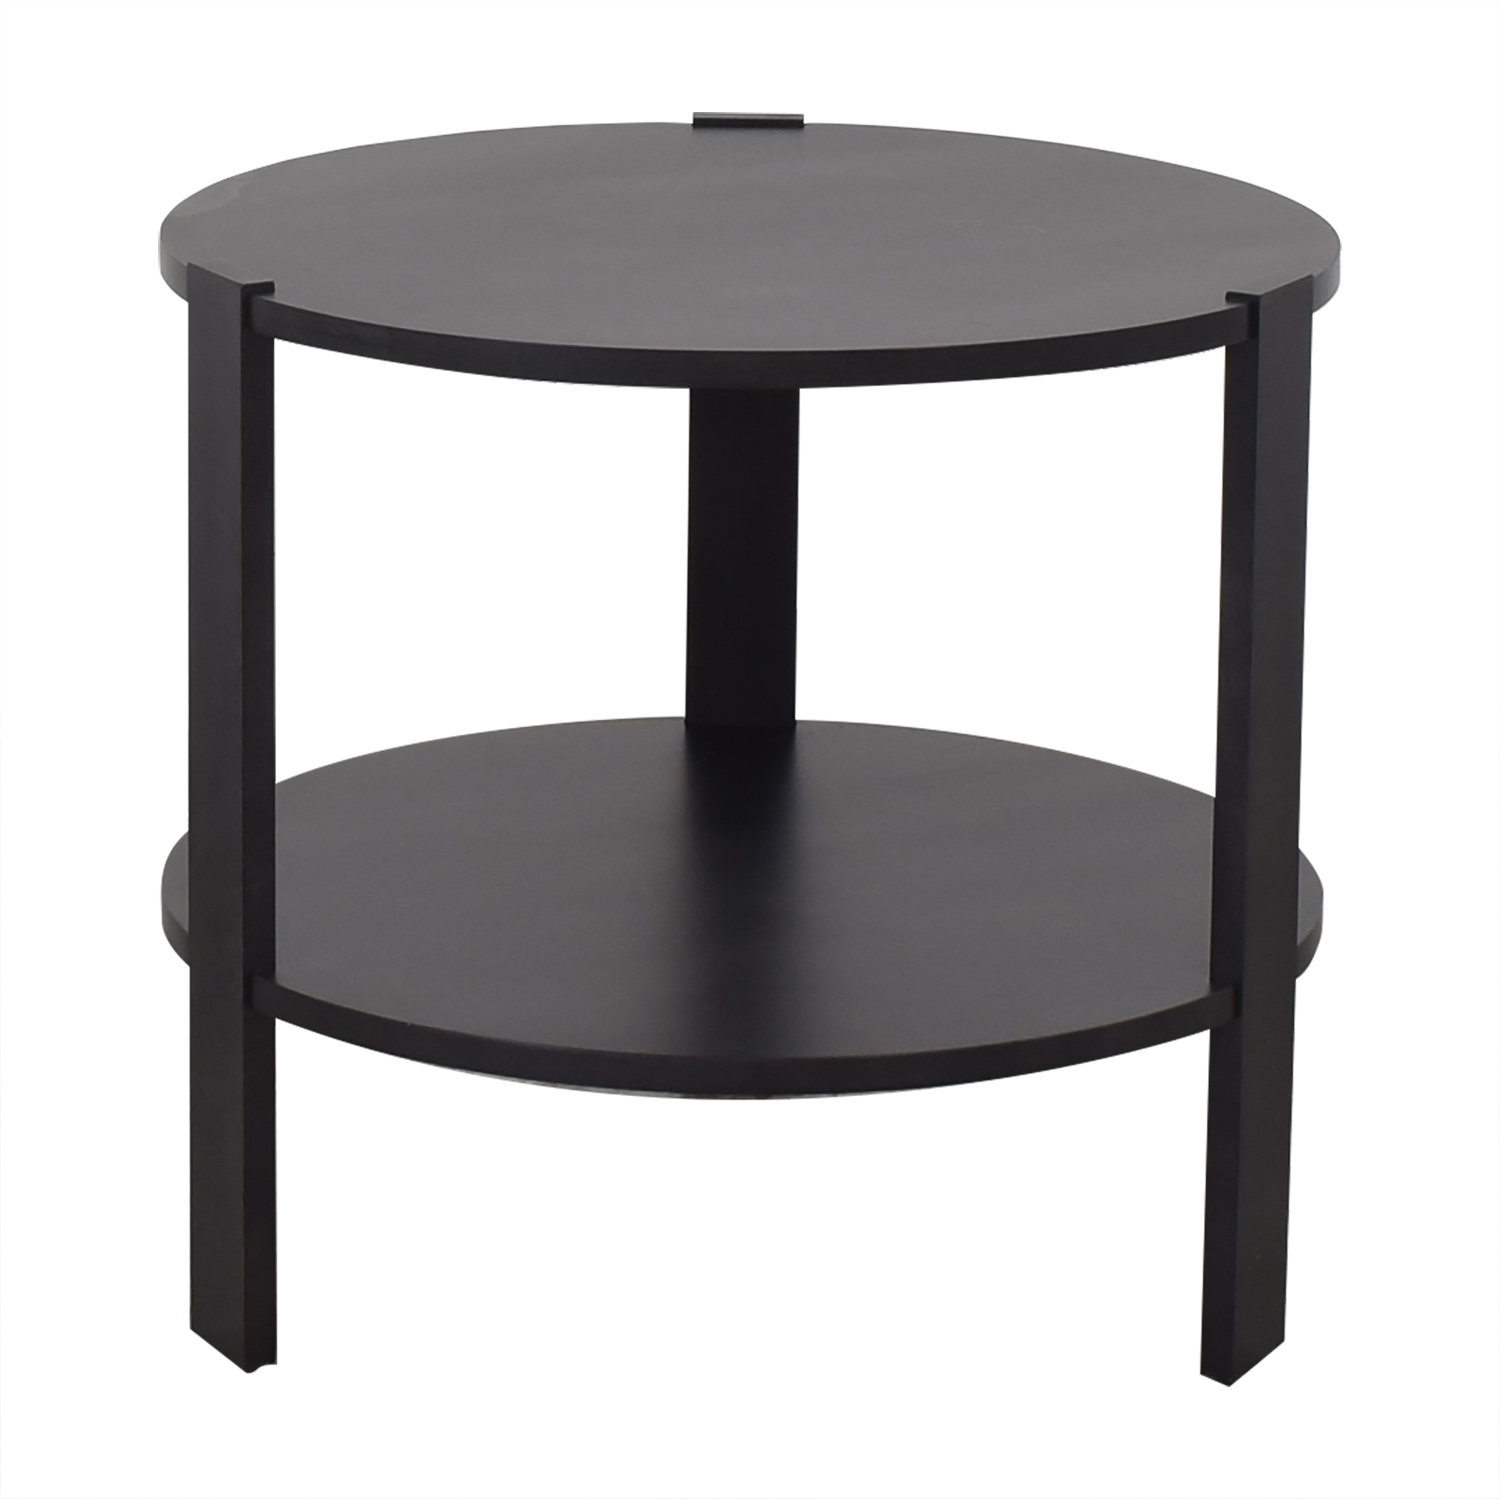 Room & Board Room & Board Greene End Table on sale